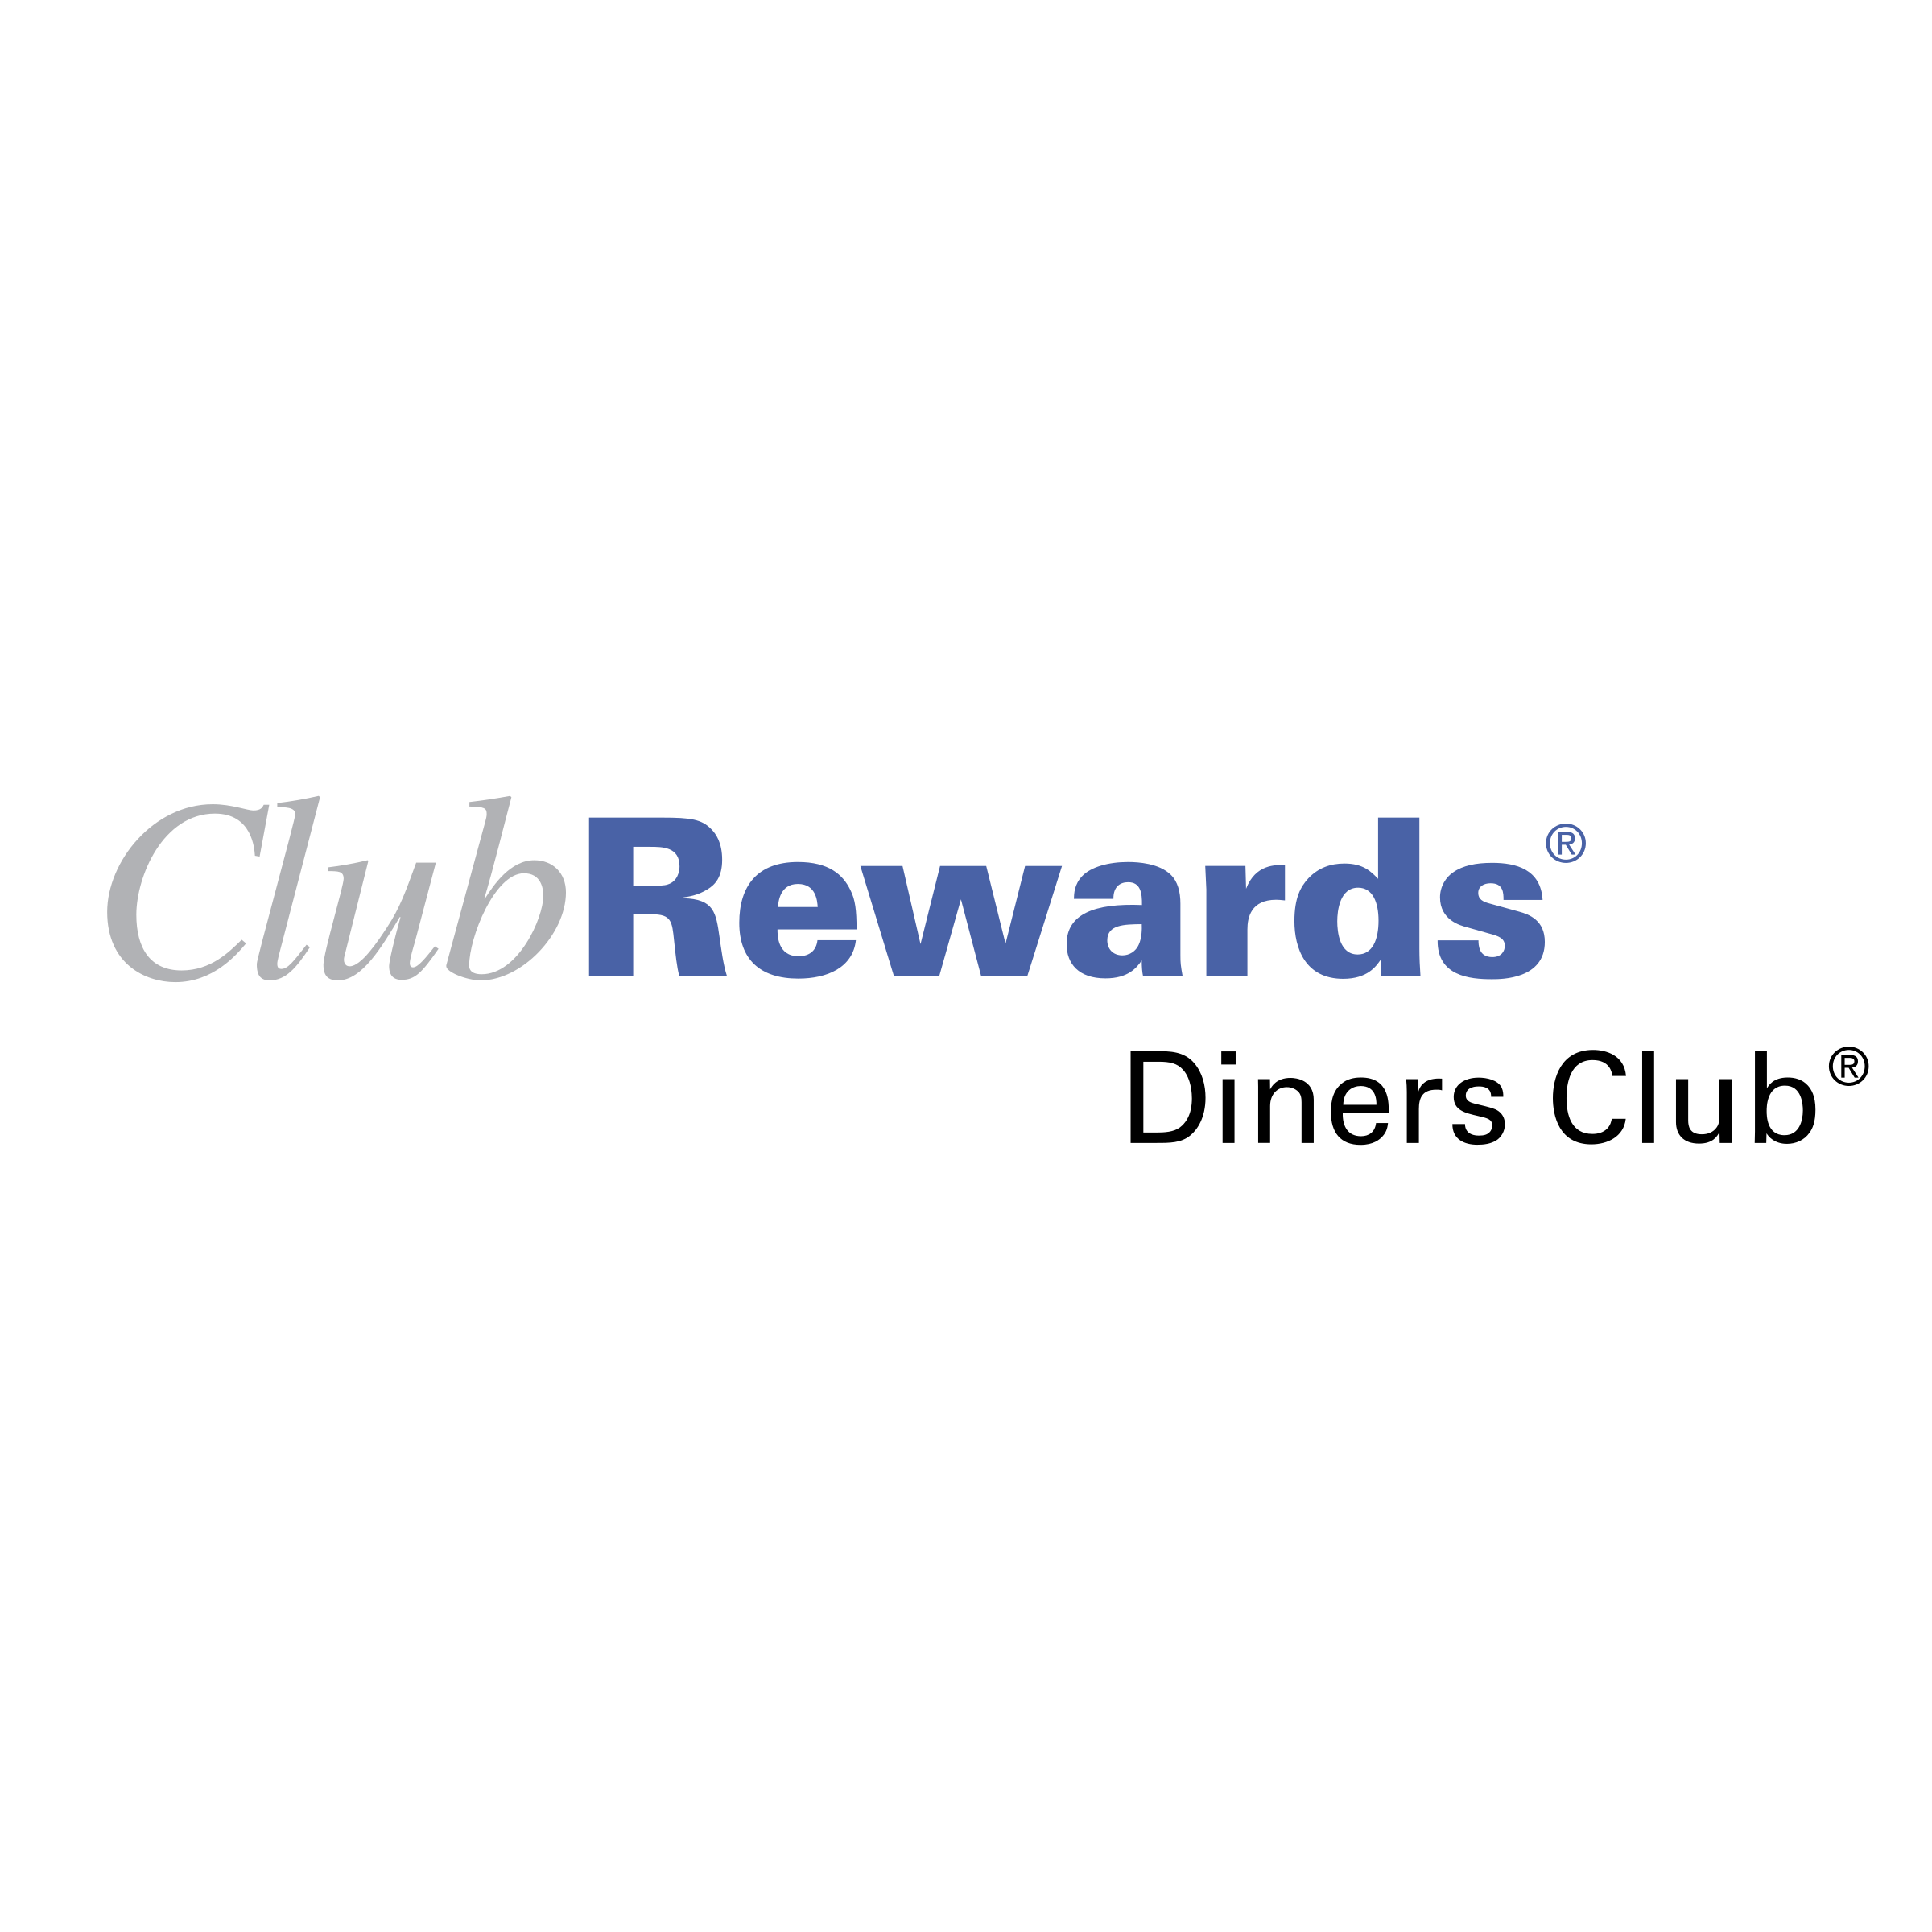 Club Rewards Logo Png Transparent Svg Vector Freebie Supply